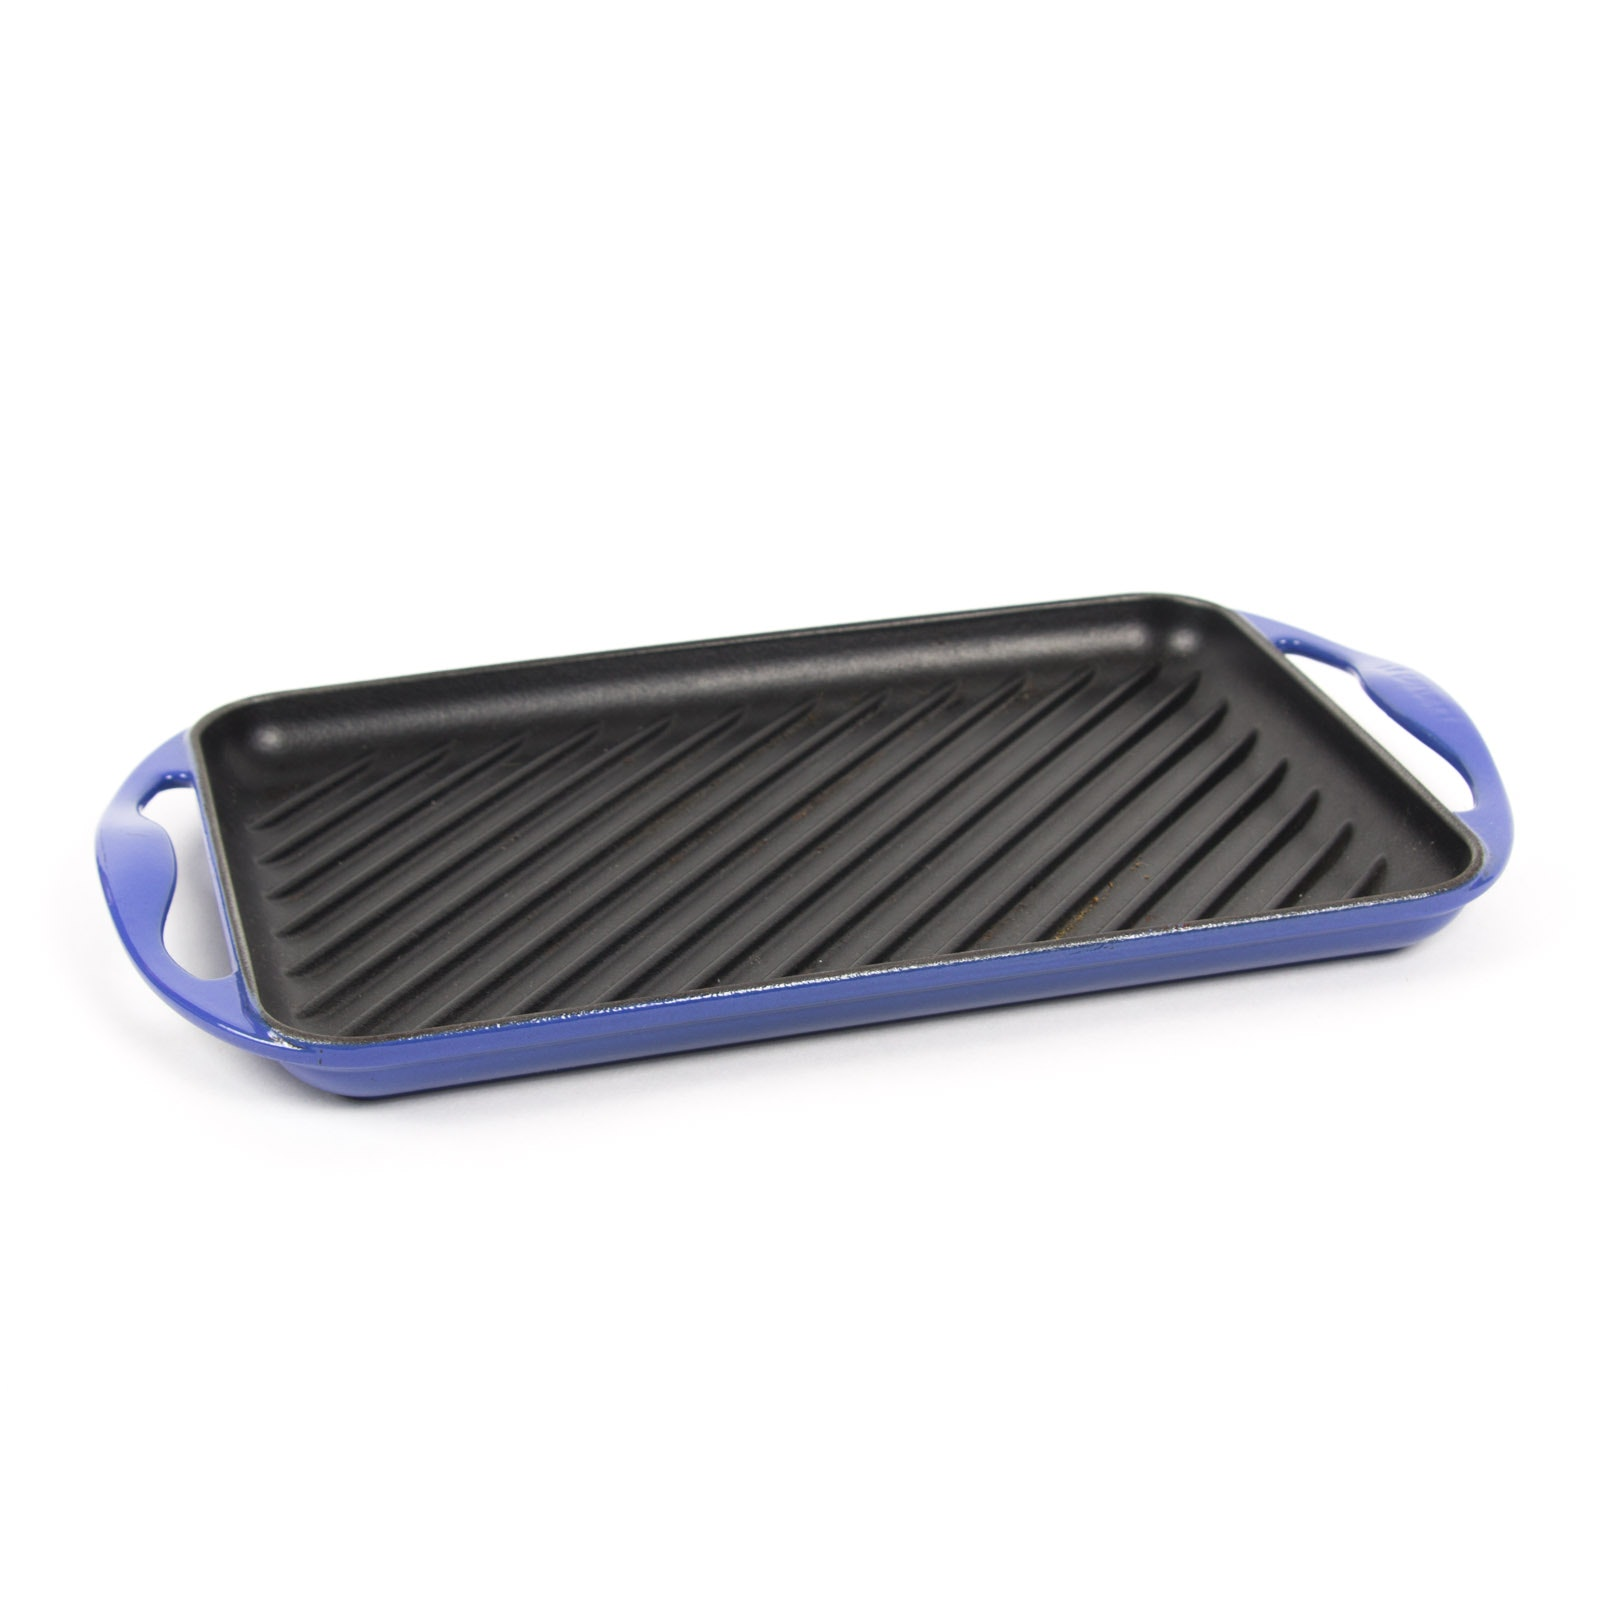 Le Creuset Blue Enamel Over Cast Iron Grill Pan